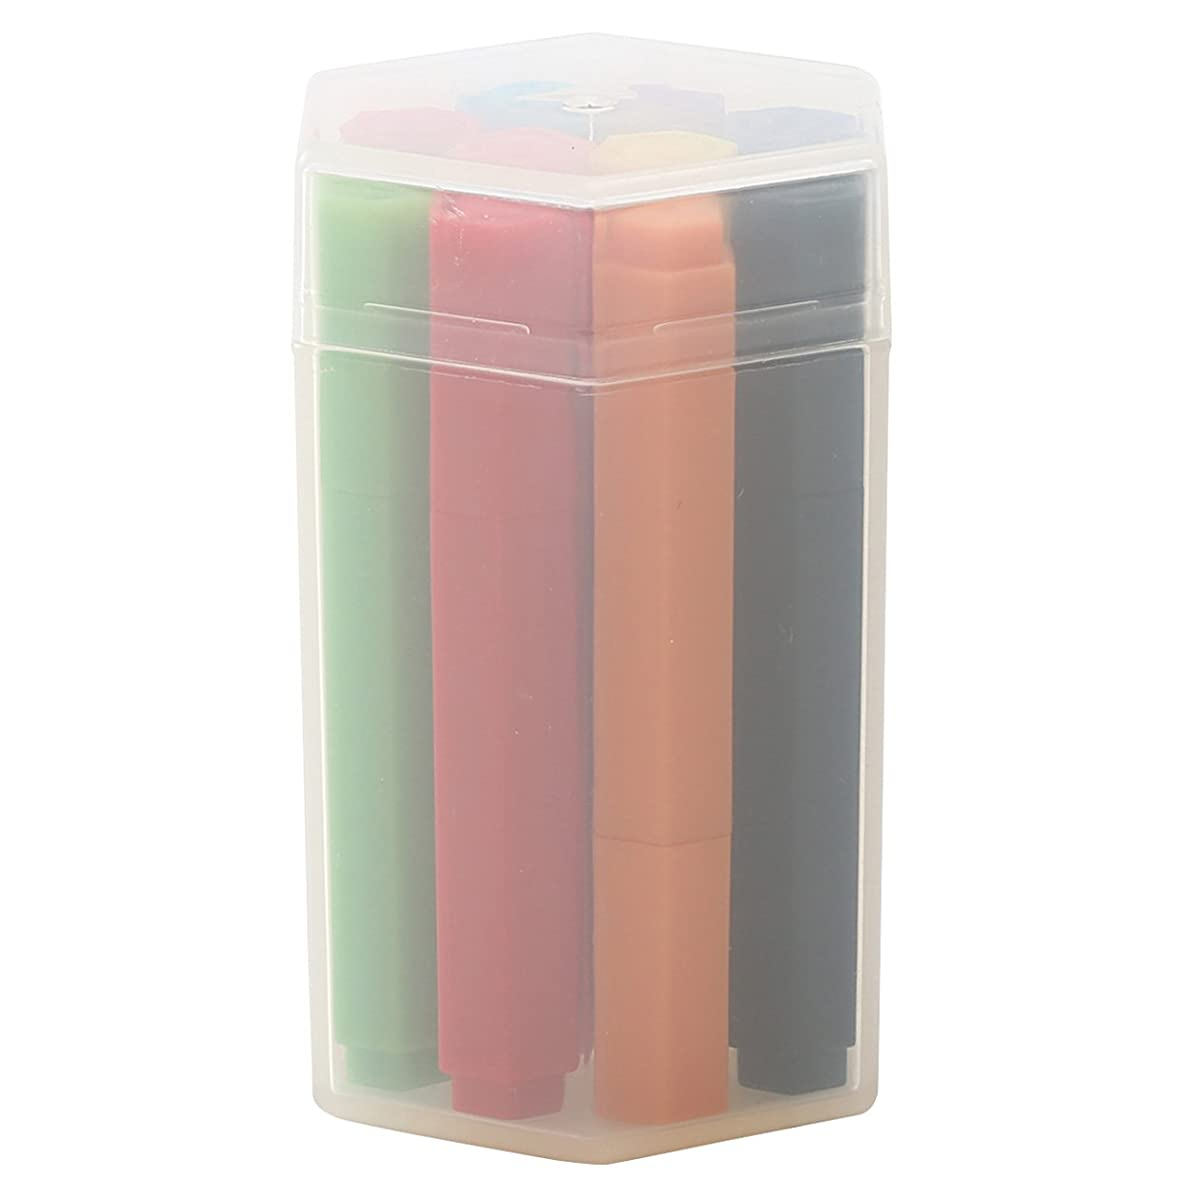 Muji Mini Size Hexagonal Aqueous Ink Pen, 10 Colors Set in Tube